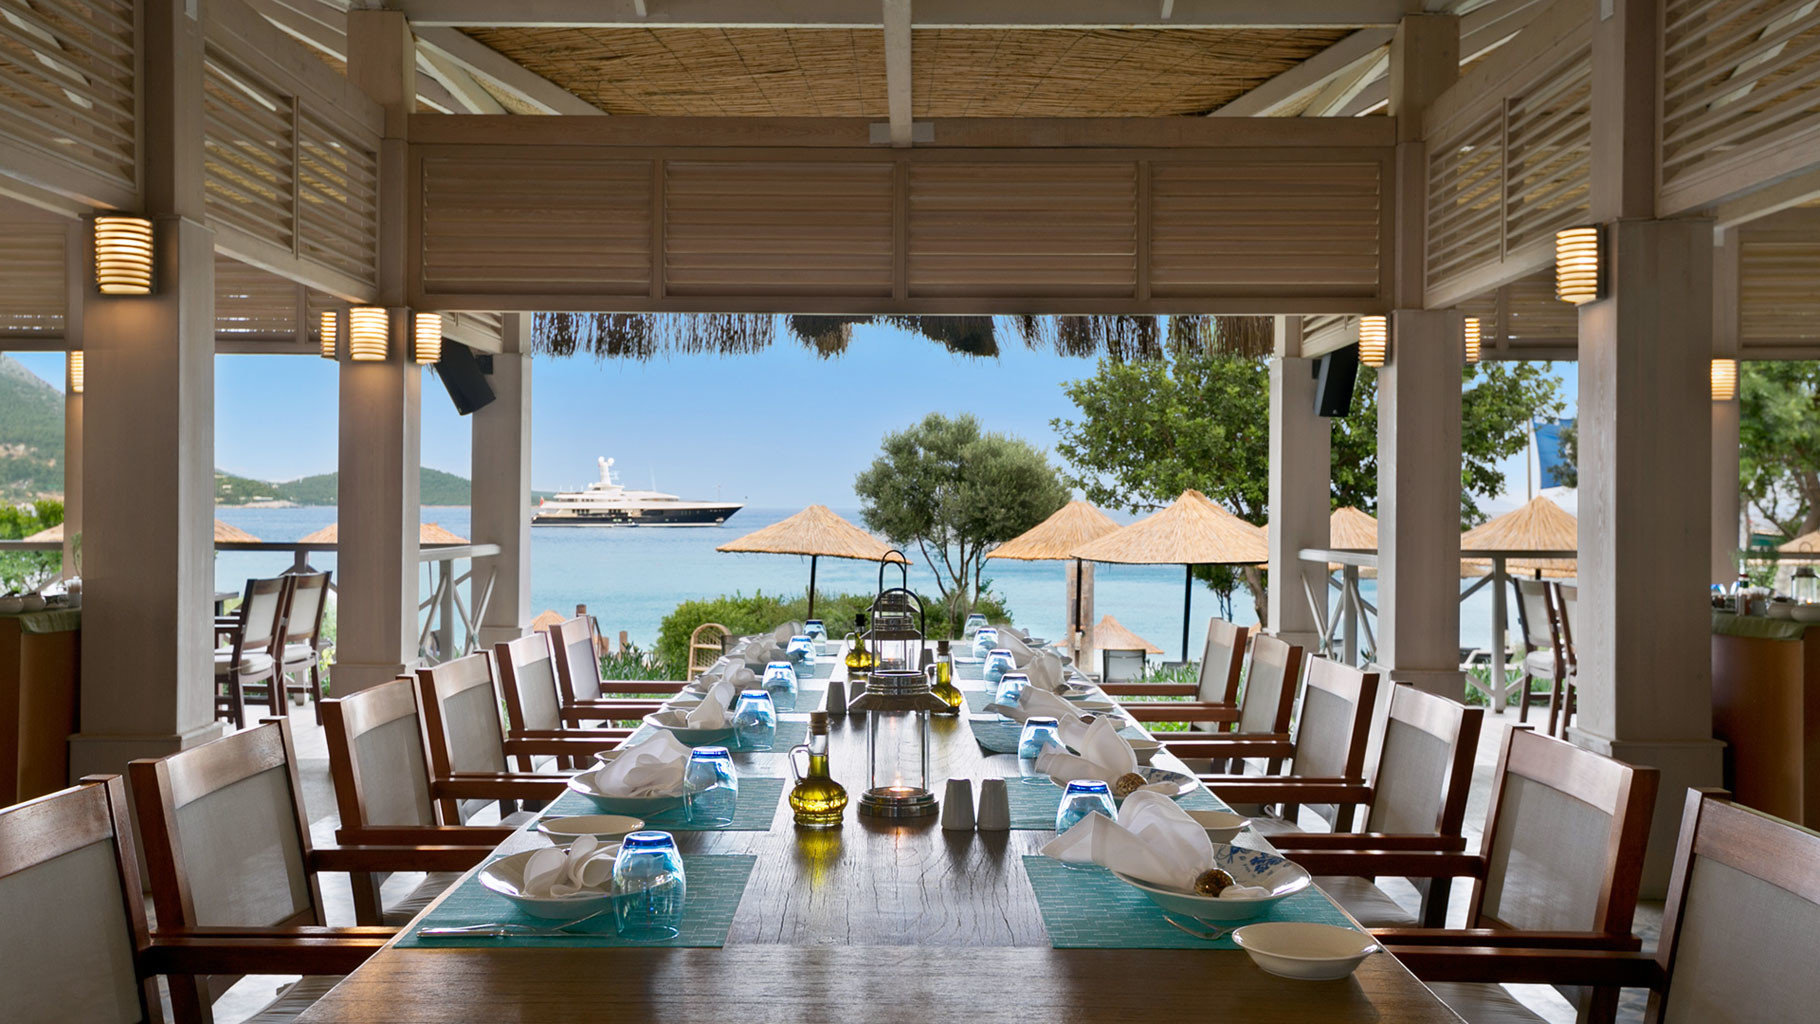 Beachfront Dining Drink Eat Family Resort Scenic views chair property restaurant condominium home function hall Lobby Villa living room set overlooking dining table